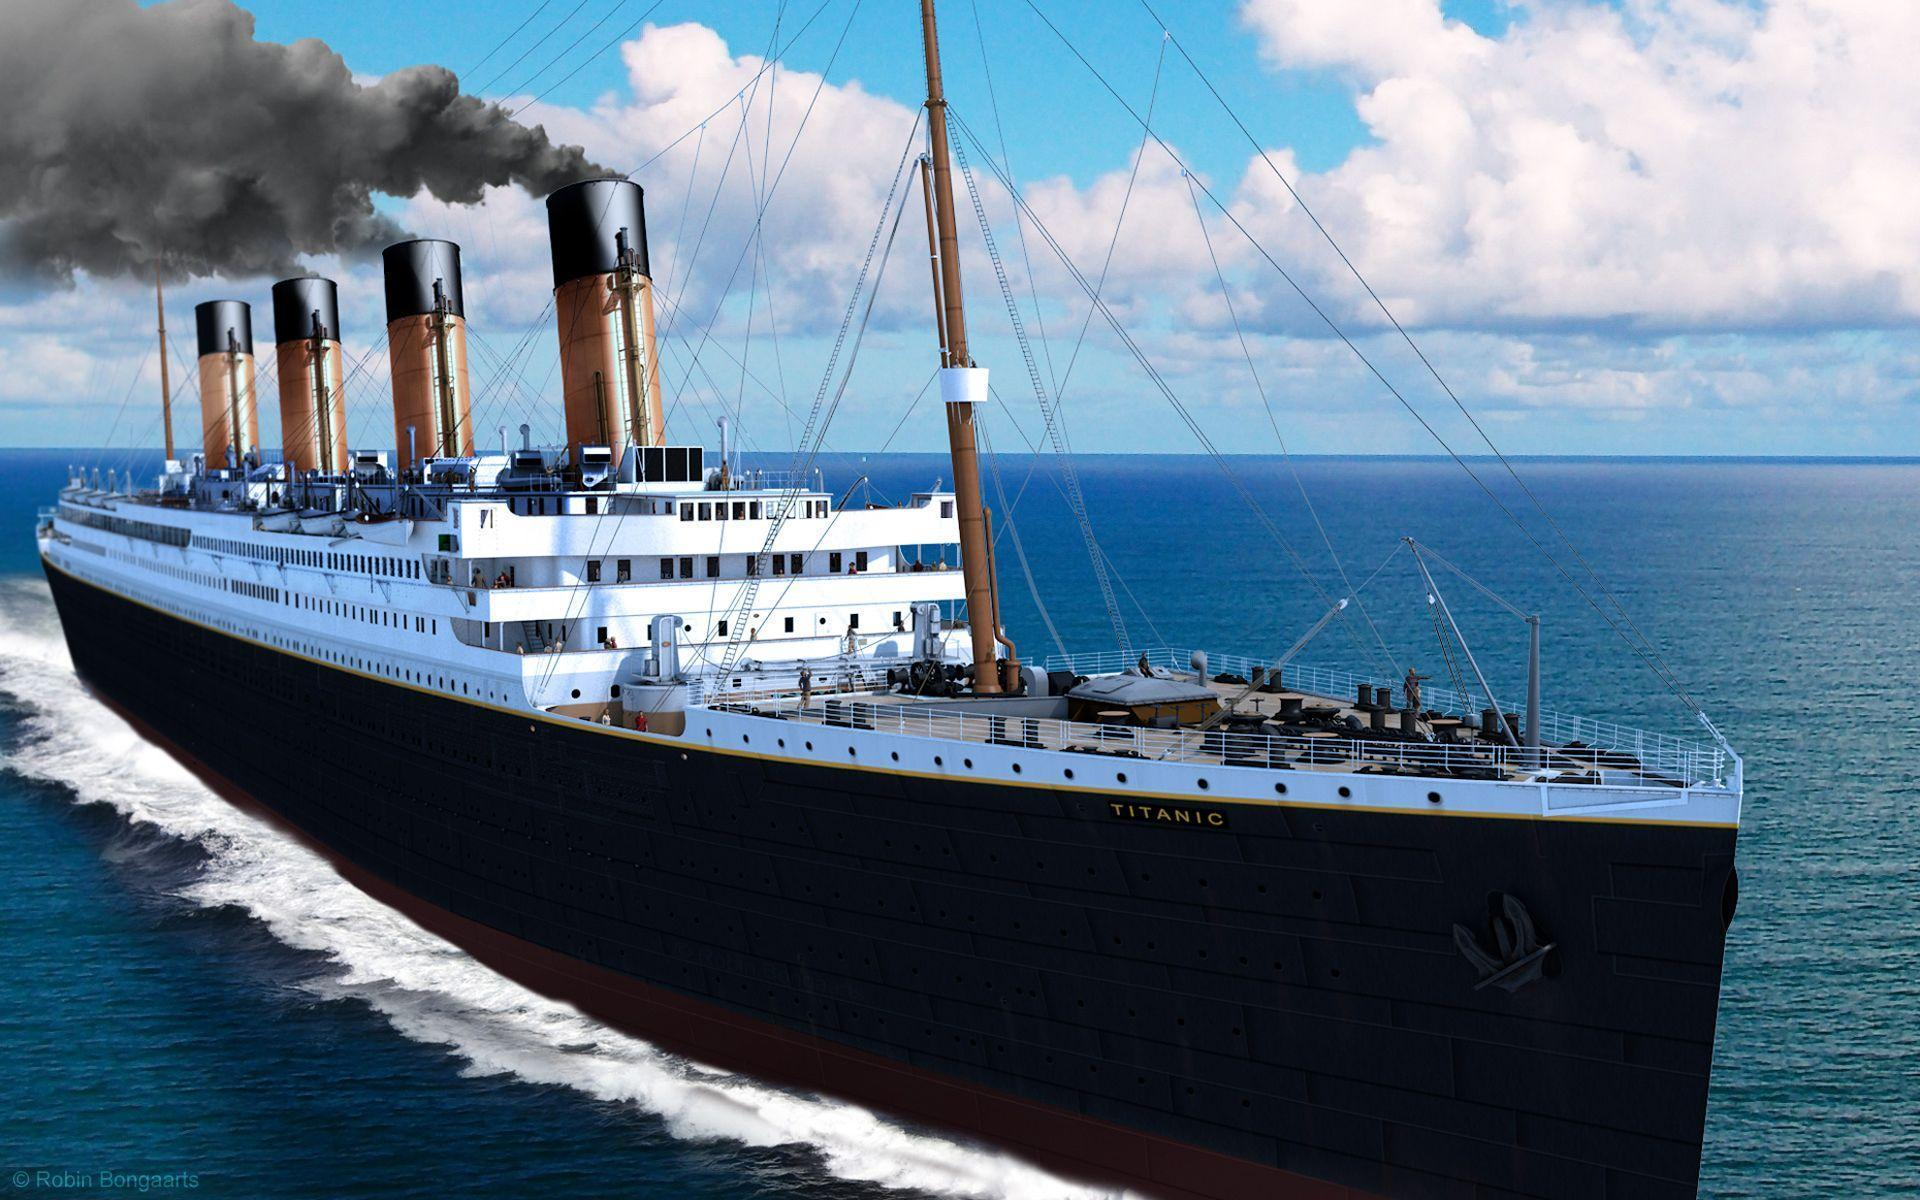 Titanic Wallpapers image